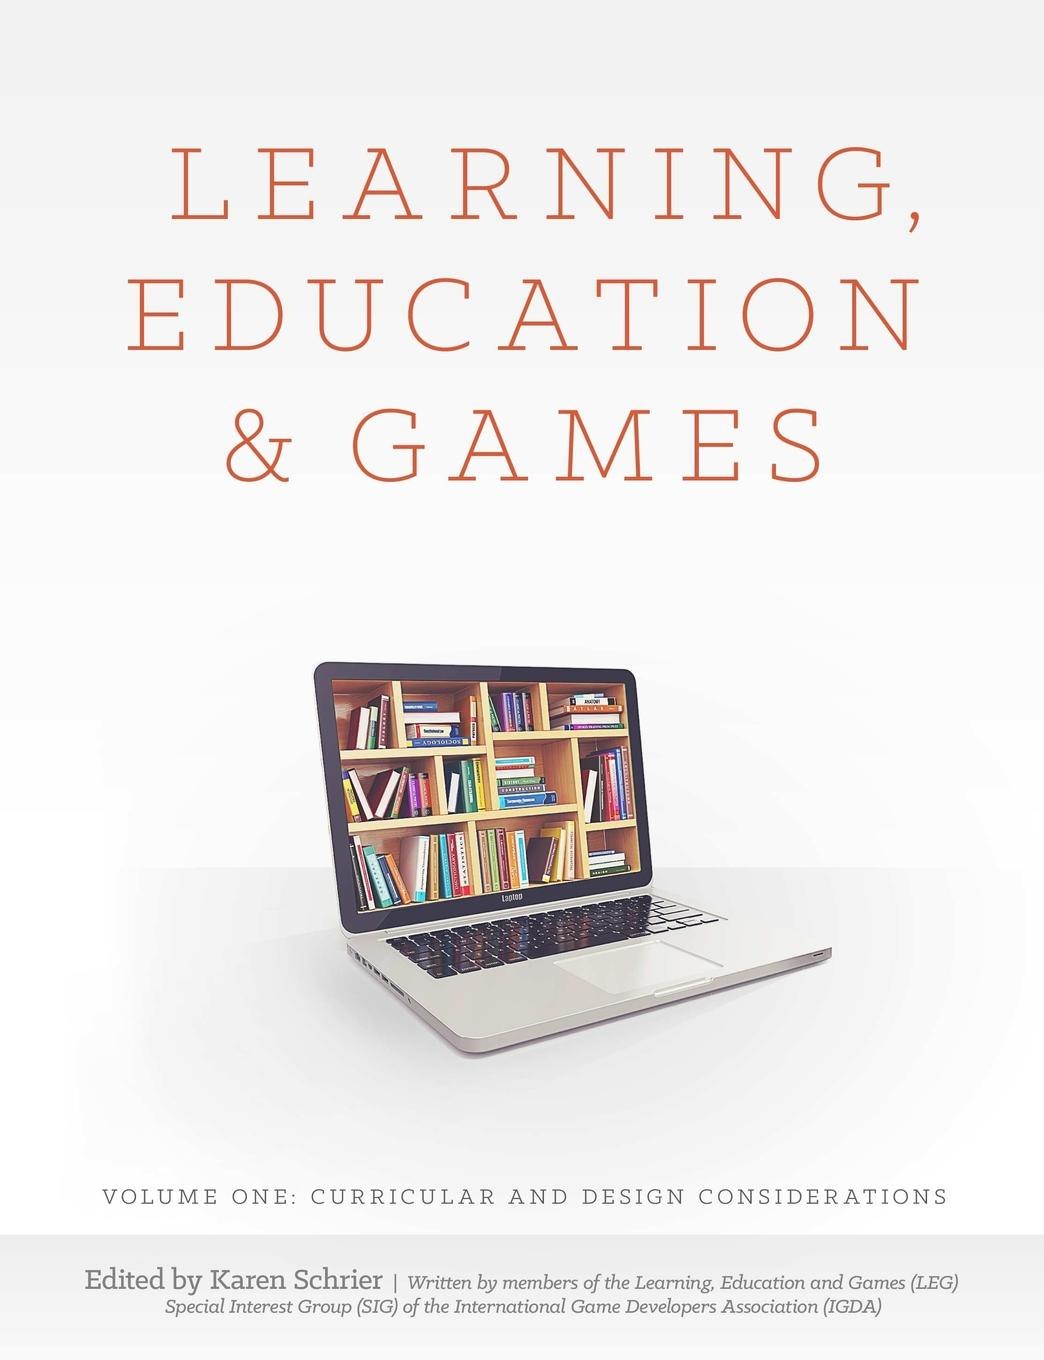 et al., Karen Schrier Learning, Education and Games. Volume One: Curricular and Design Considerations the perfect online course best practices for designing and teaching pb